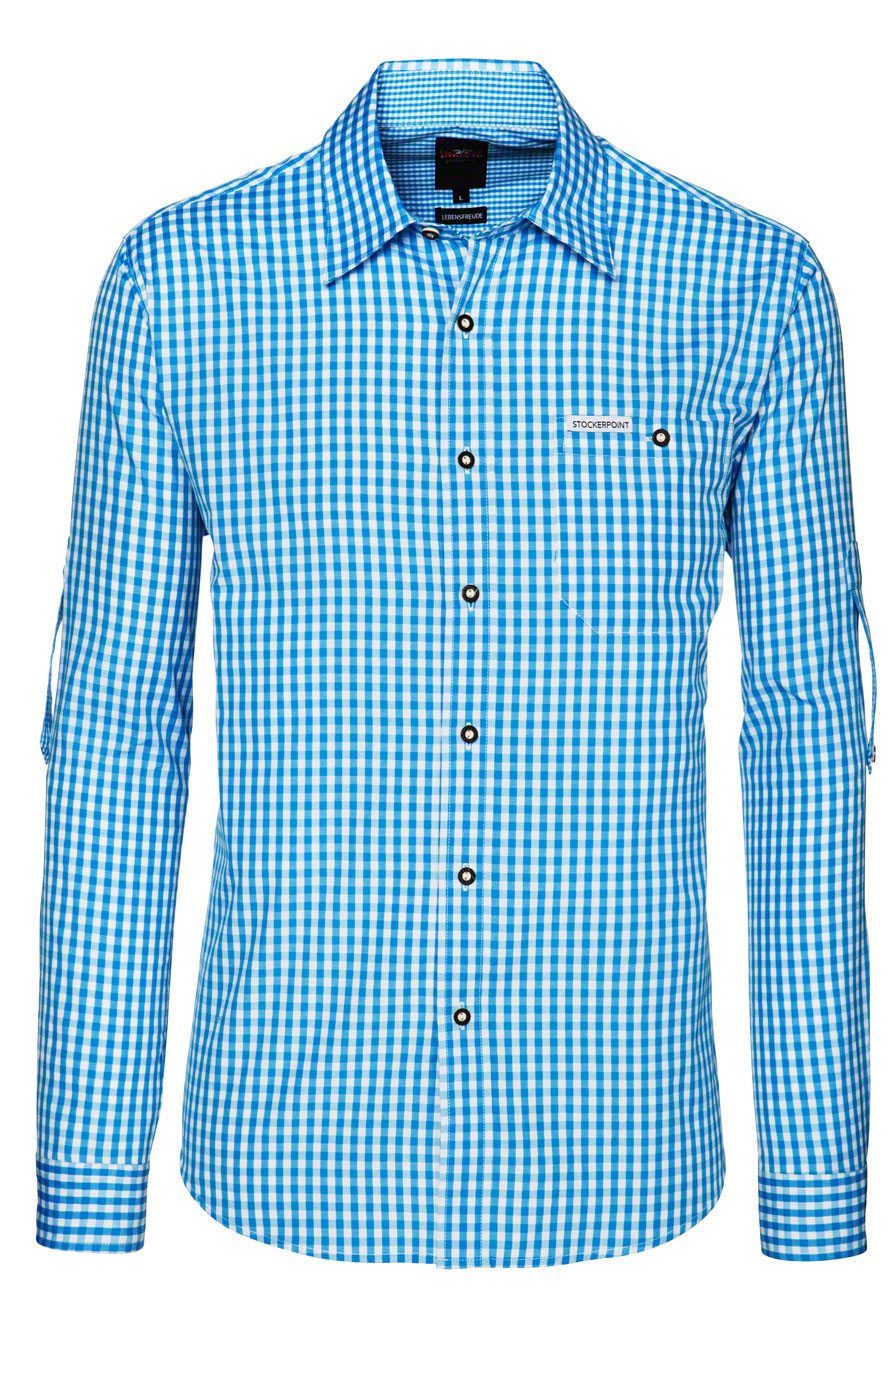 weitere Bilder von German traditional shirt checkered Campos2 turquoise